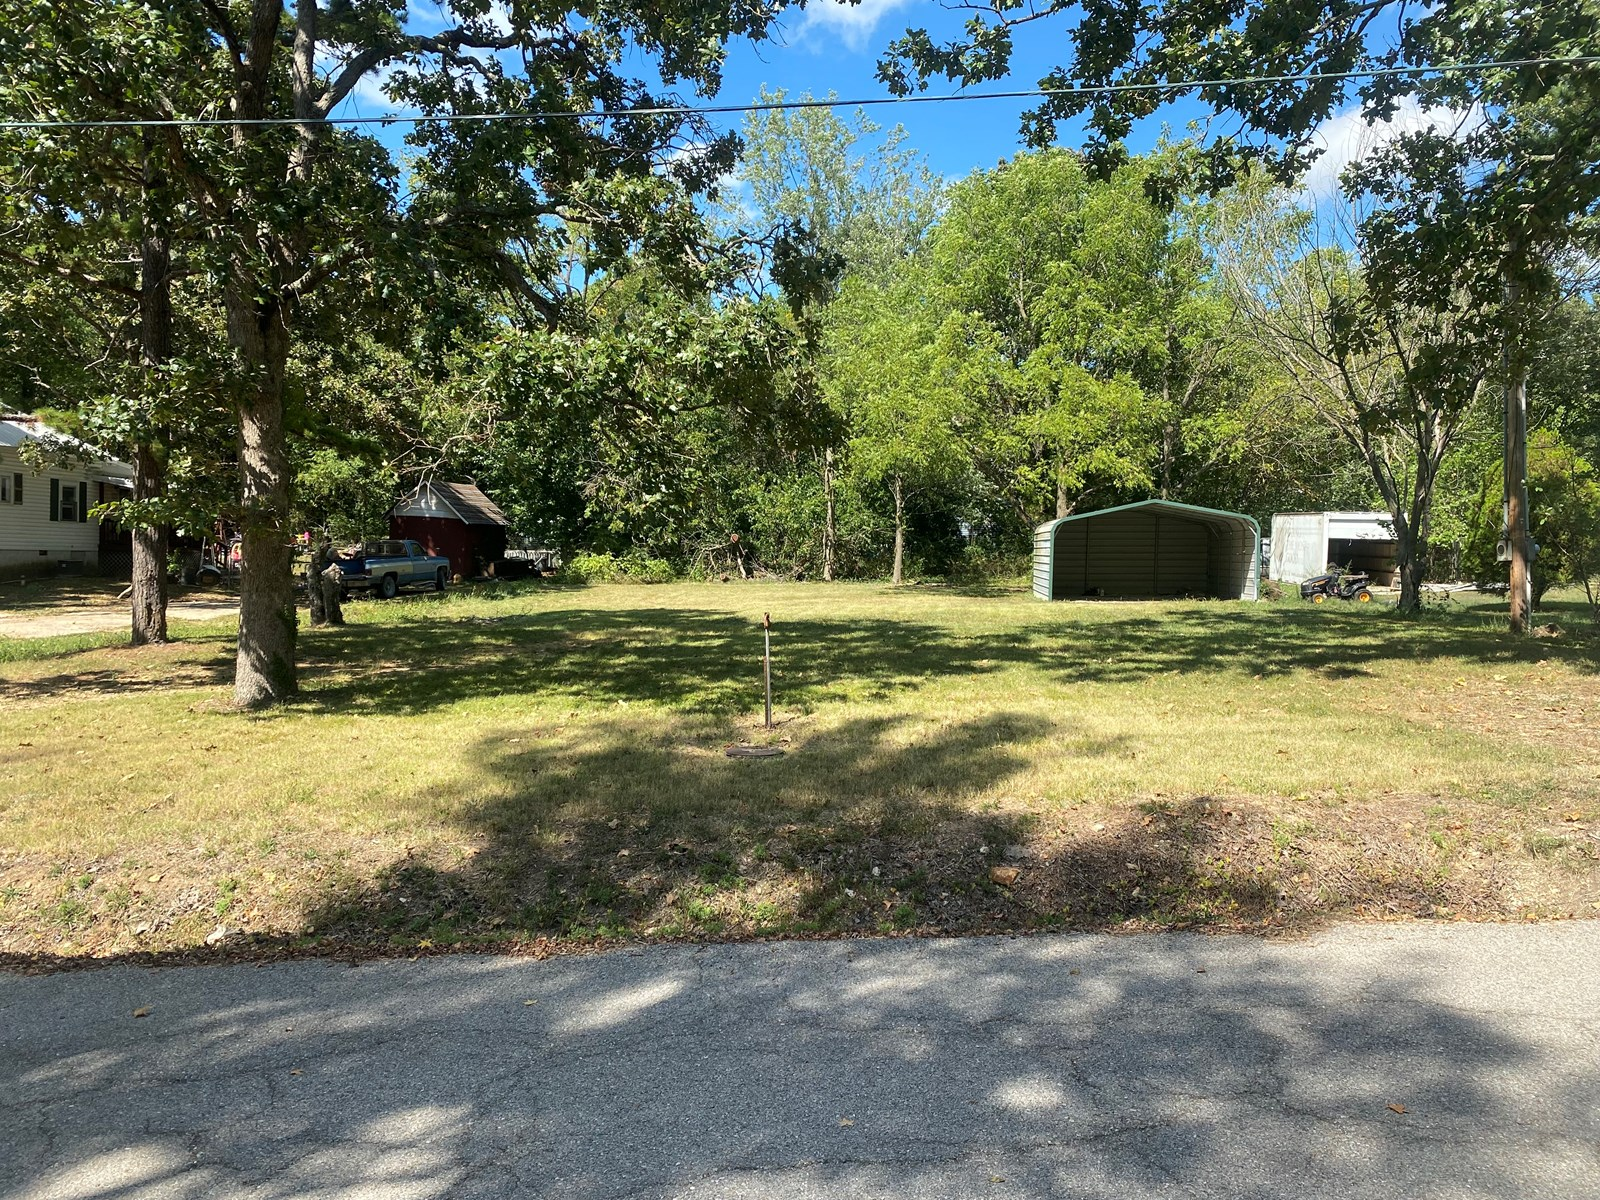 Residential Lot For Sale in South Central Missouri